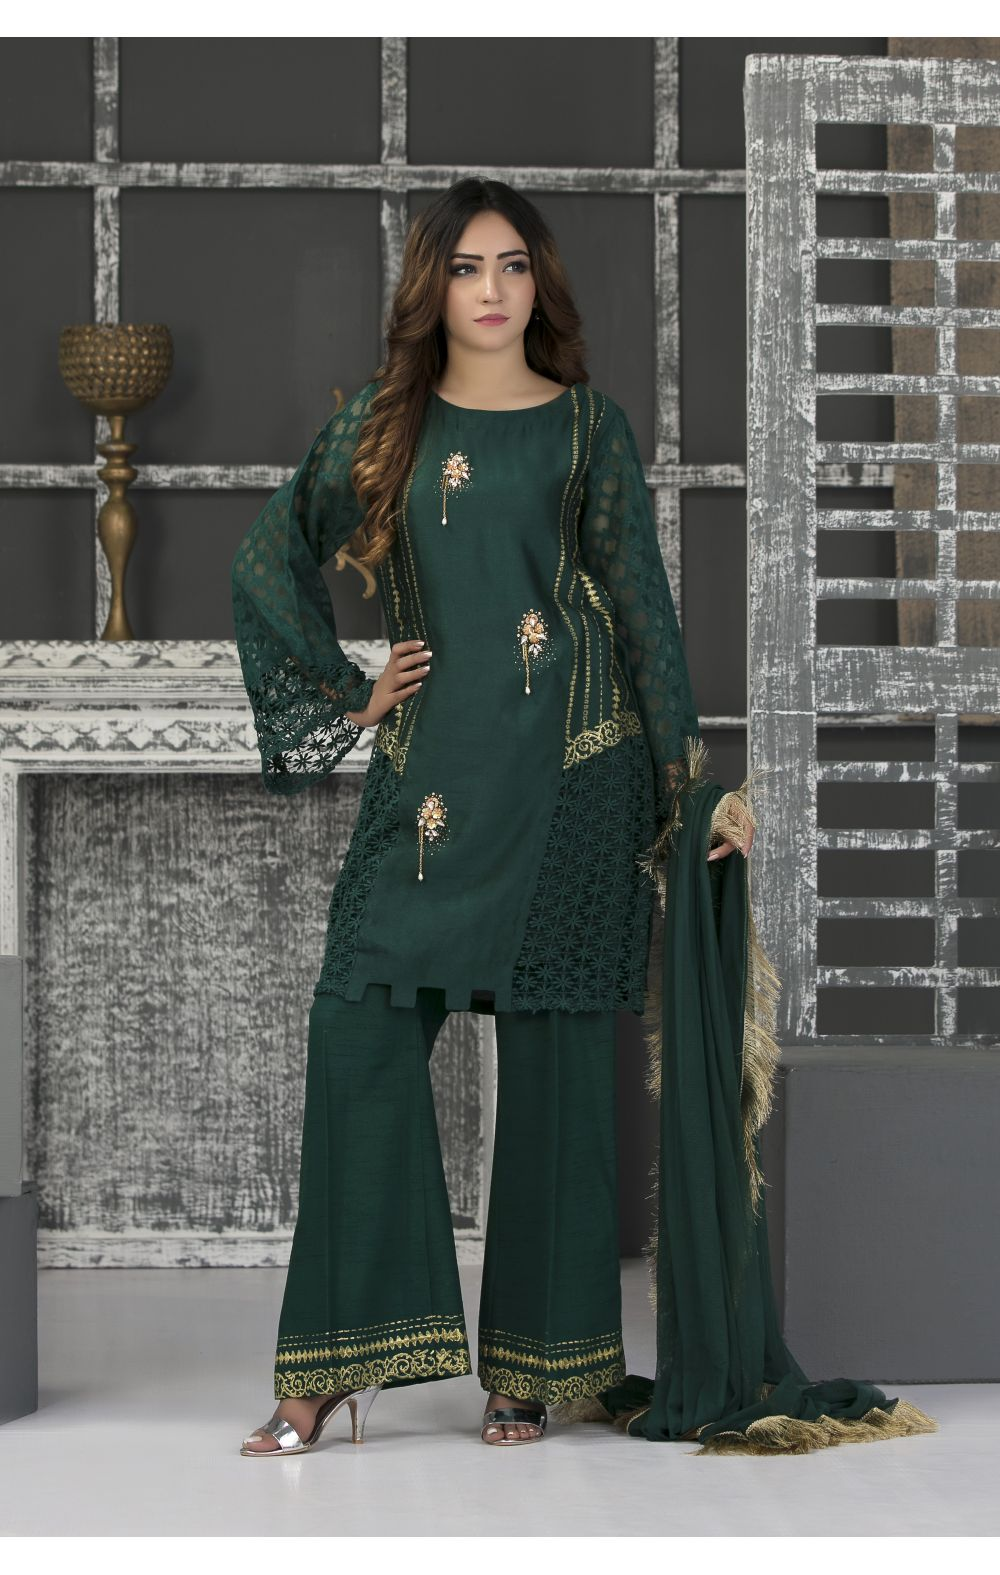 Casual wear for girls in pakistan dating. mazzi maz and andreaschoice dating after divorce.